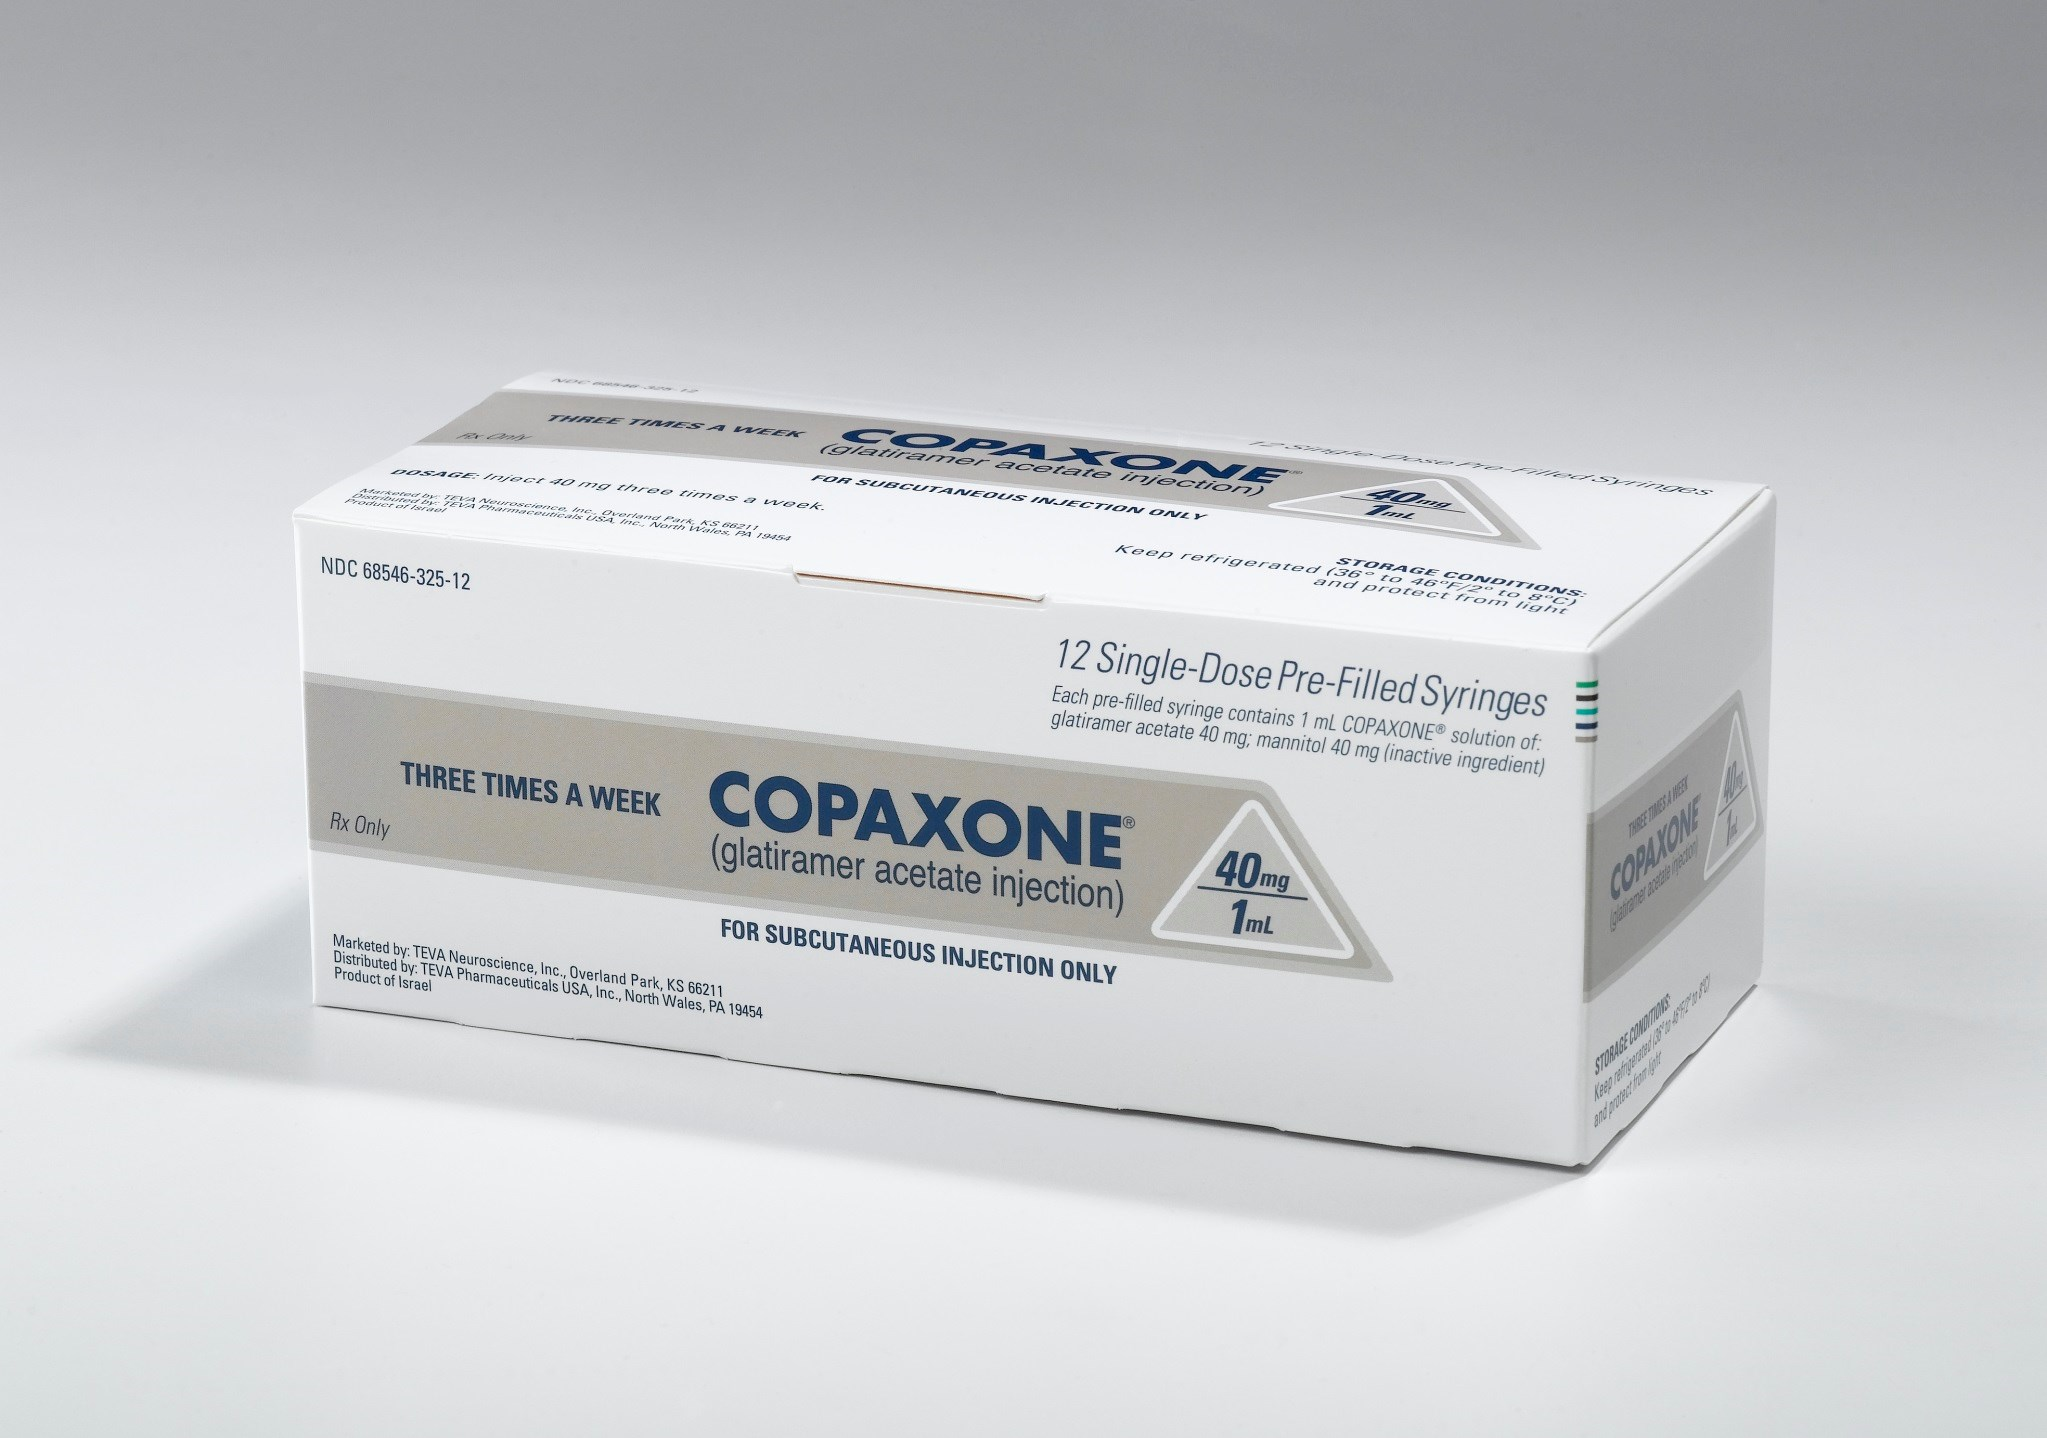 Teva's Copaxone now has generic competition.